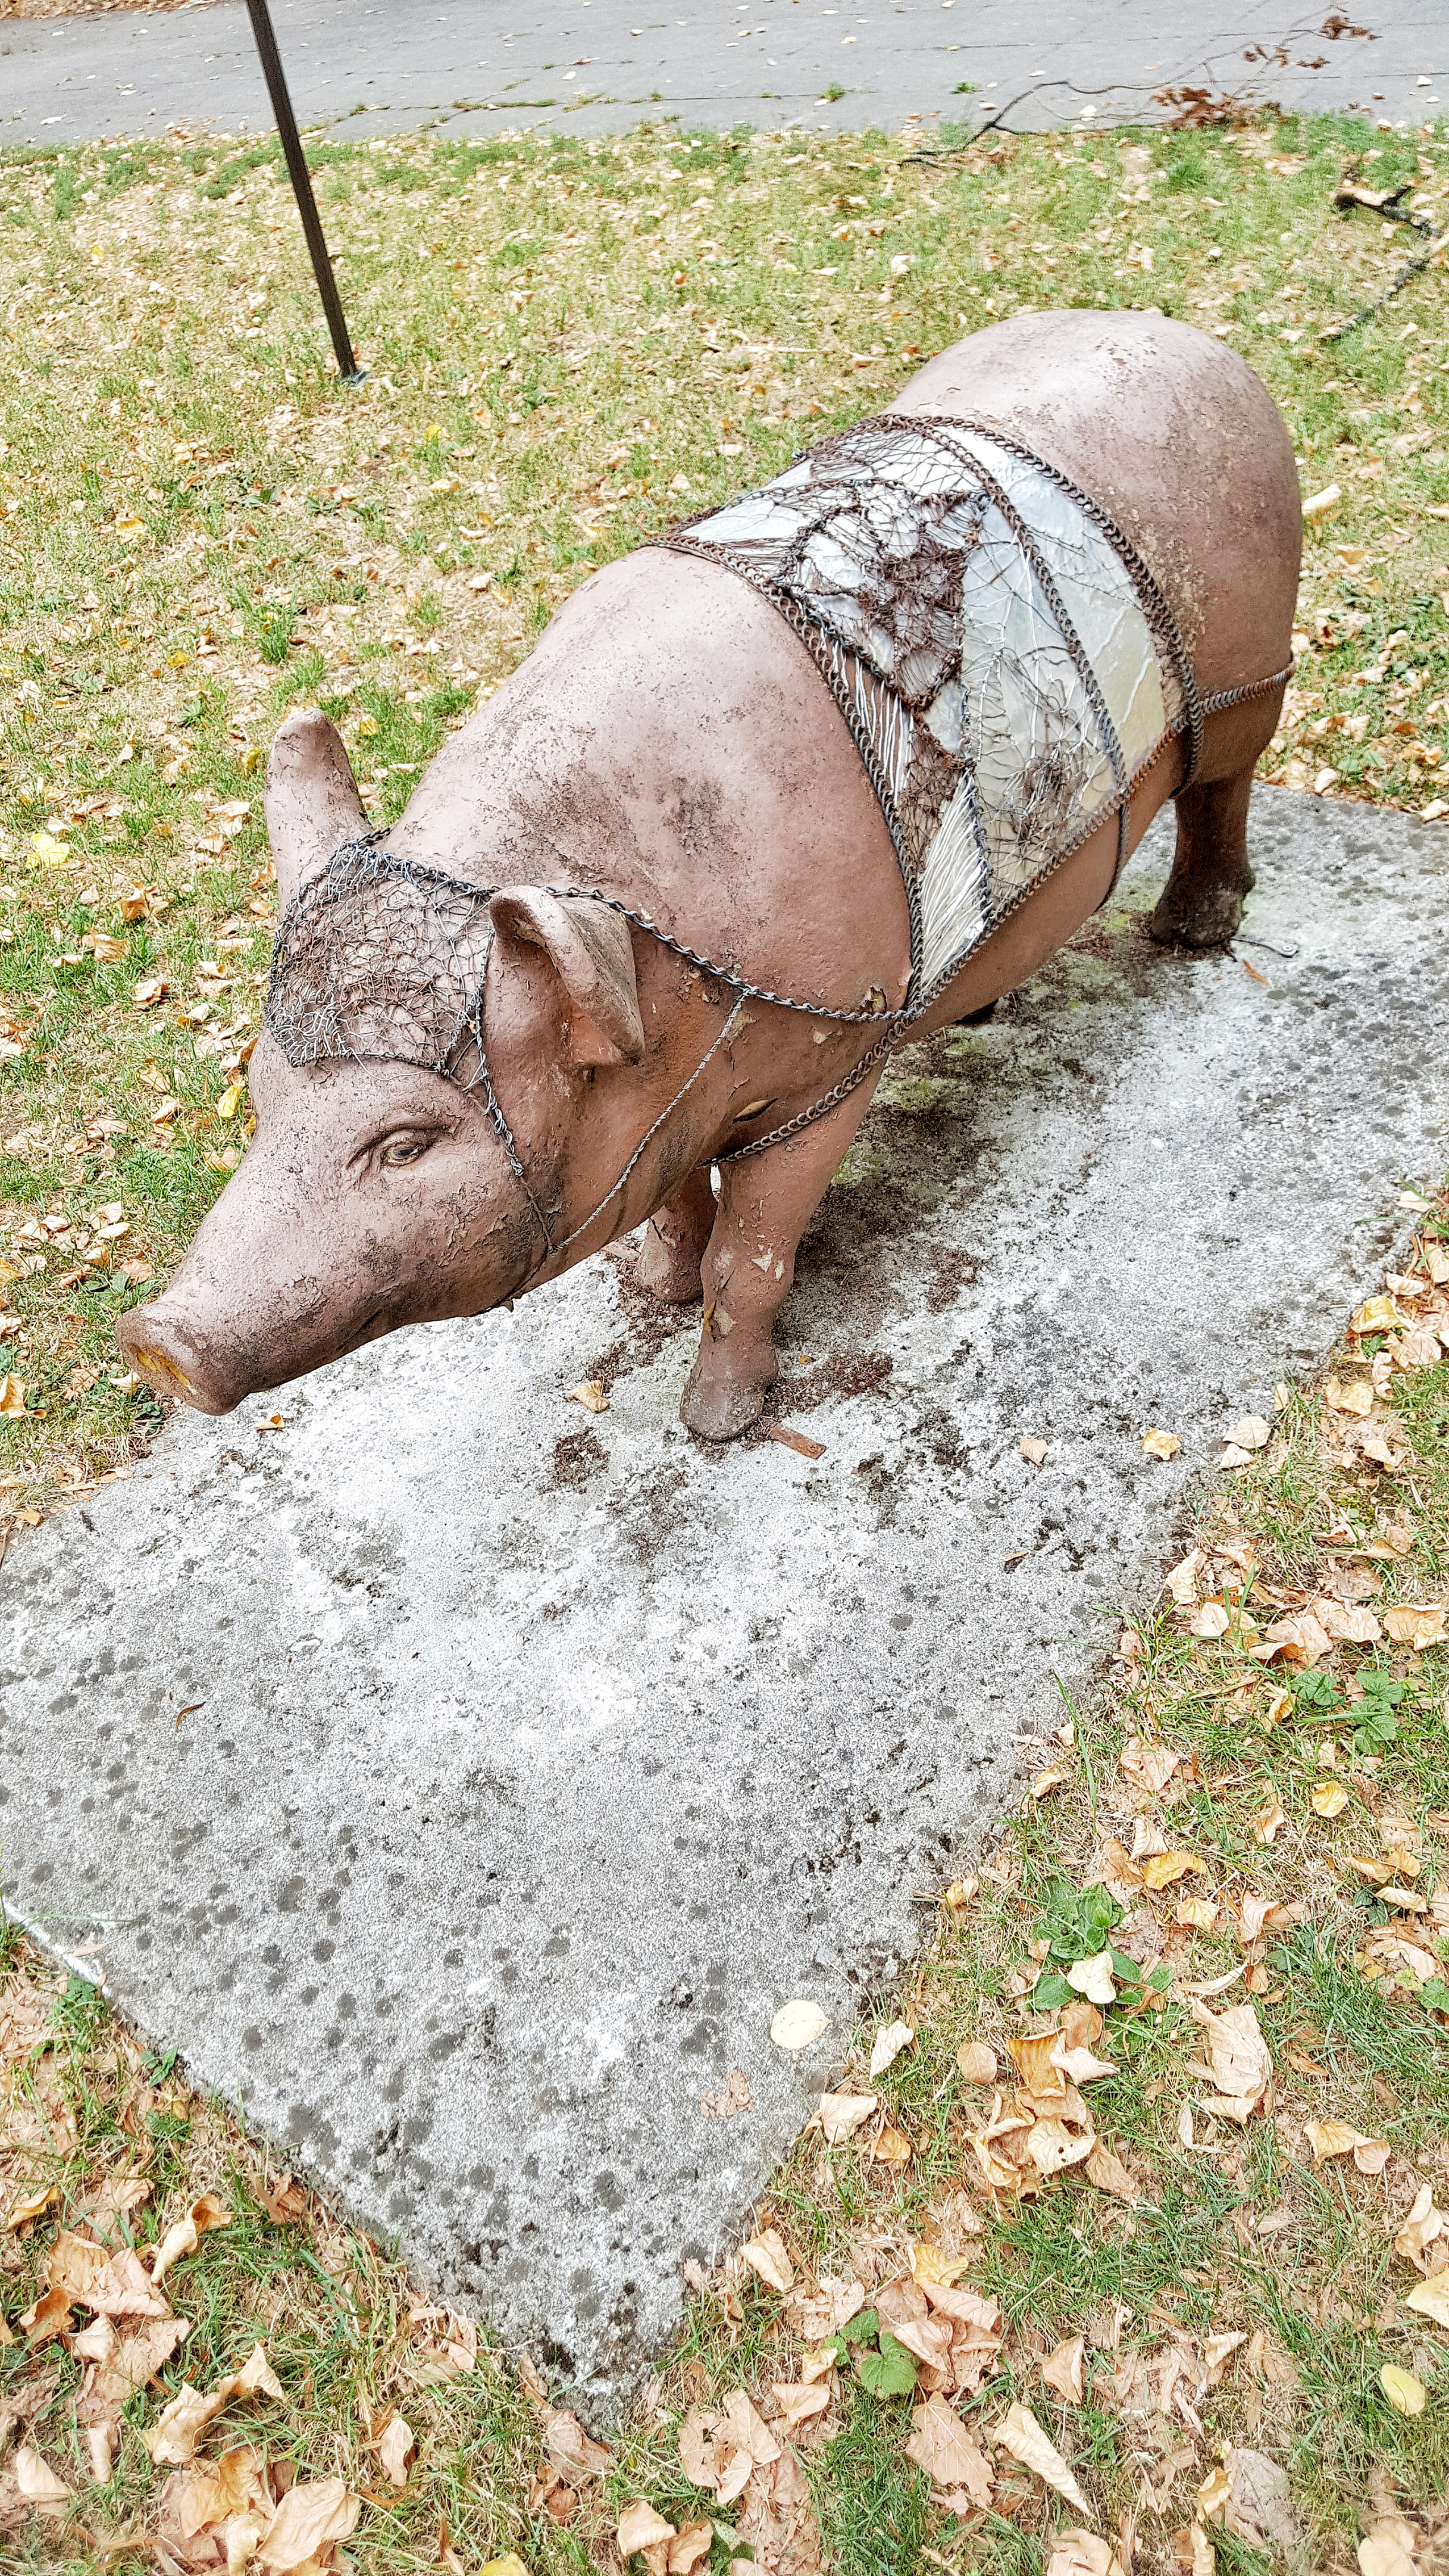 SCHWEINEMUSEUM - MUSEO DEL MAIALE - STOCCARDA